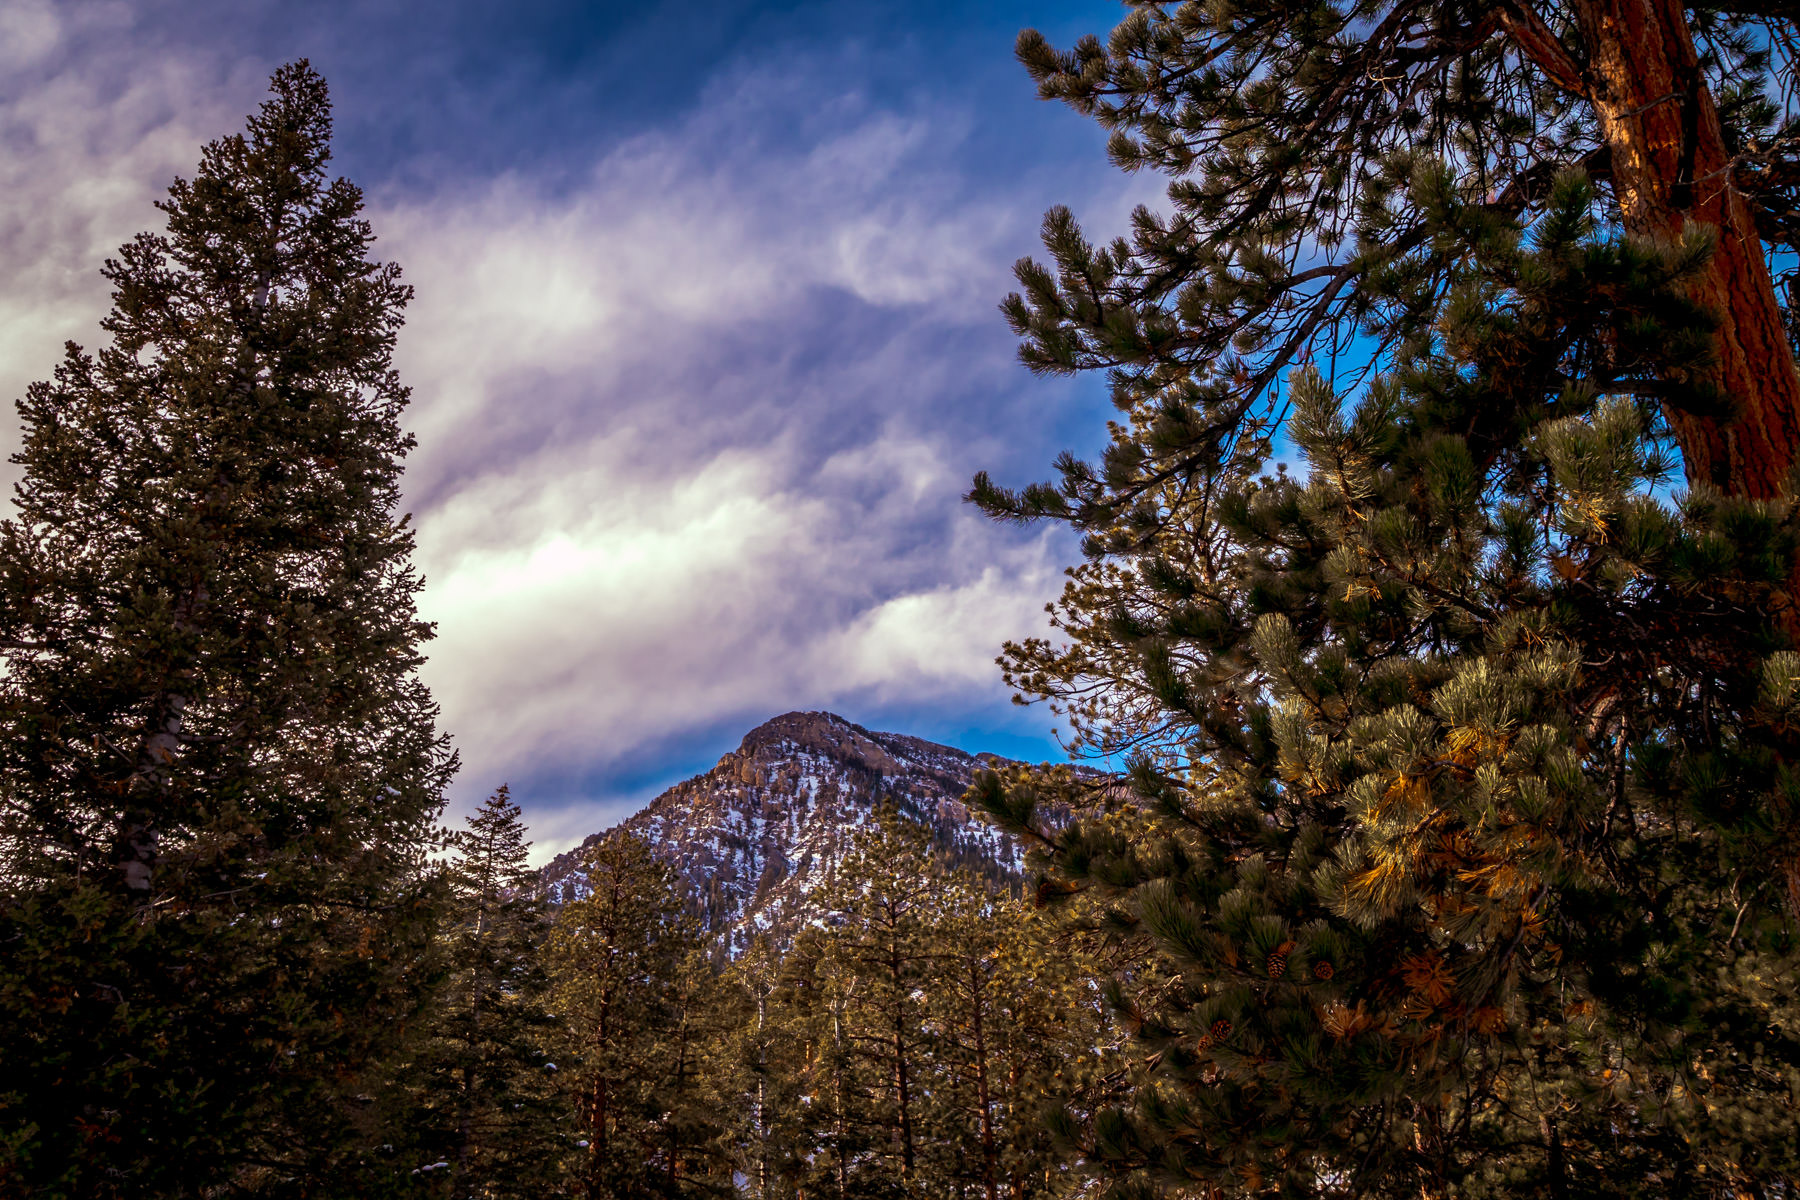 A snow-covered prominence of Nevada's Mount Charleston rises above the surrounding forest.